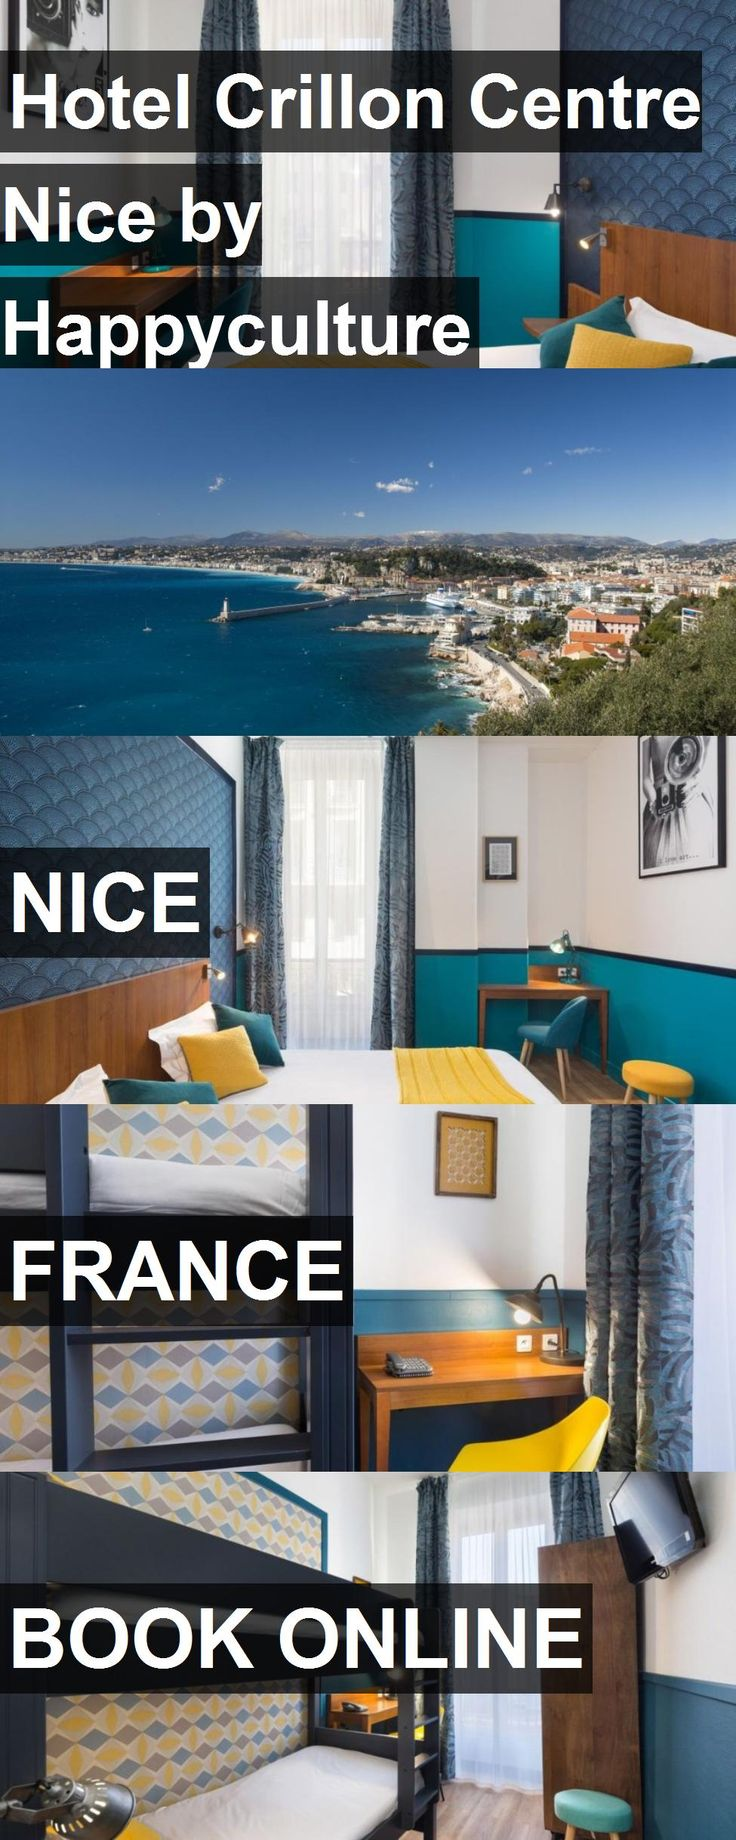 Hotel Hotel Crillon Centre Nice by Happyculture in Nice, France. For more information, photos, reviews and best prices please follow the link. #France #Nice #HotelCrillonCentreNicebyHappyculture #hotel #travel #vacation